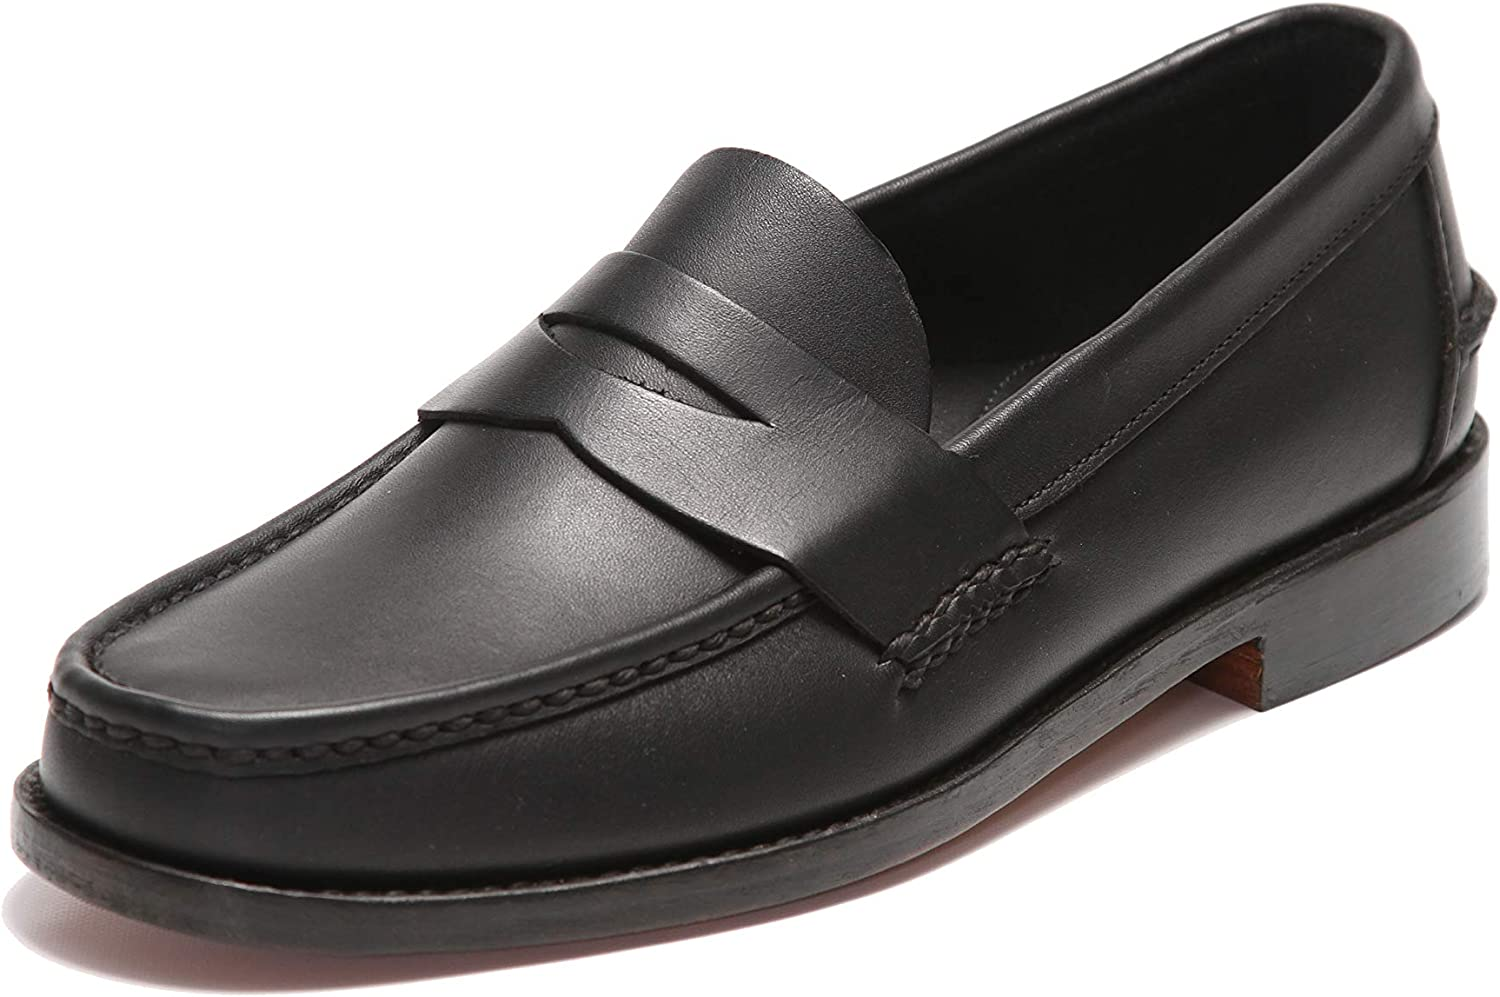 Handsewn Company Men's Penny Loafer